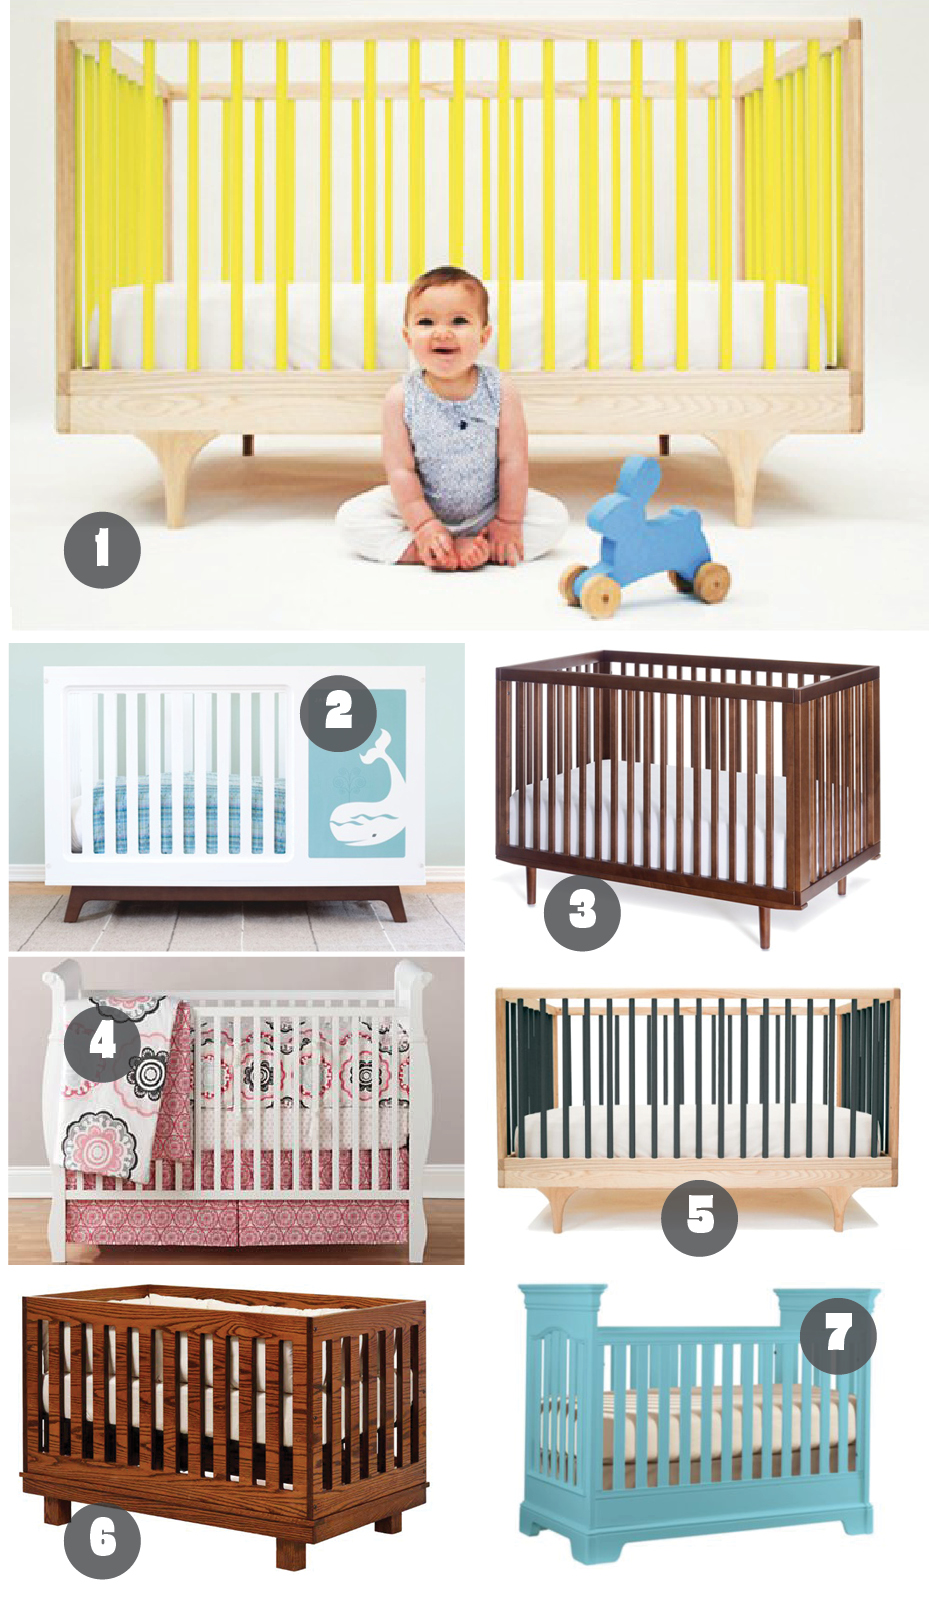 mini design stunning ideas crib euro canvas with furniture london convertible in amazing interesting cribwhite baby boy cribs cool dresserr pali painted